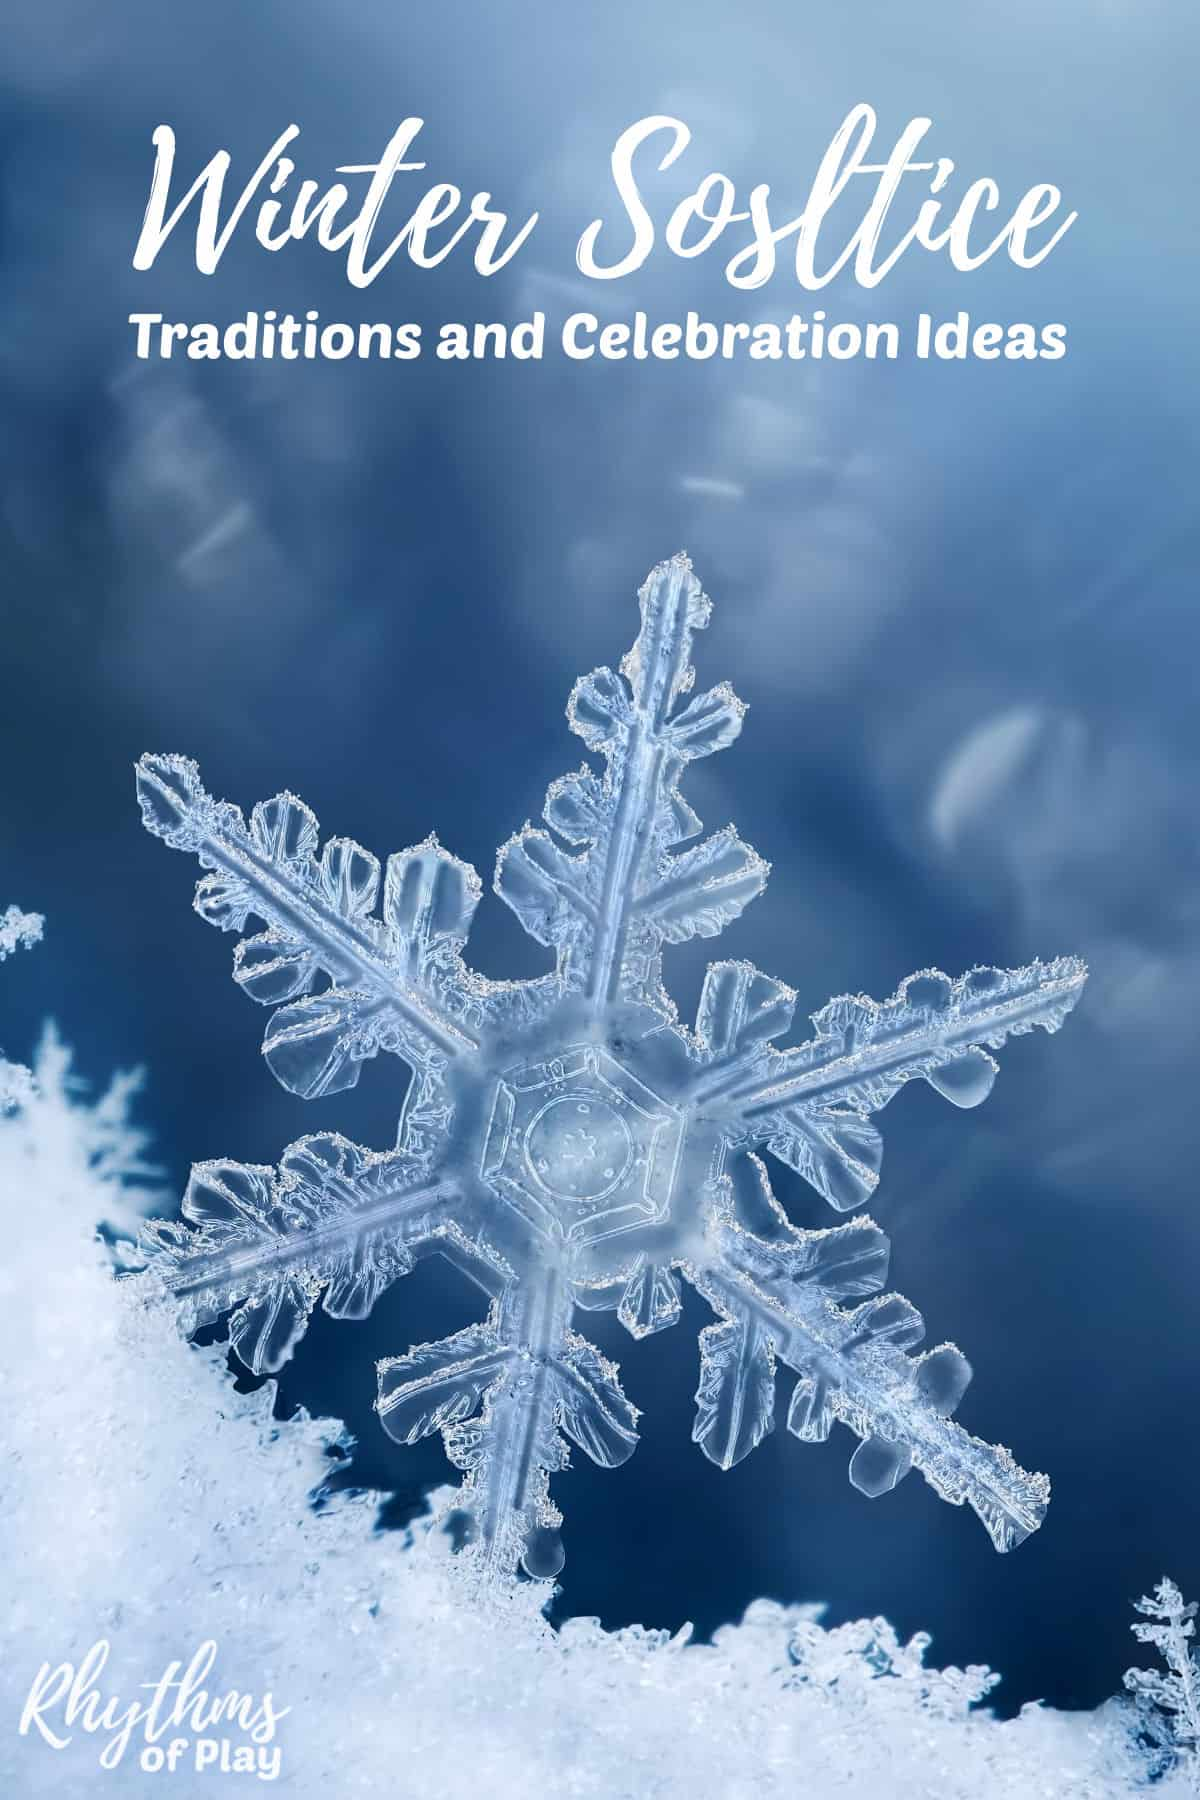 Winter solstice traditions and celebration ideas